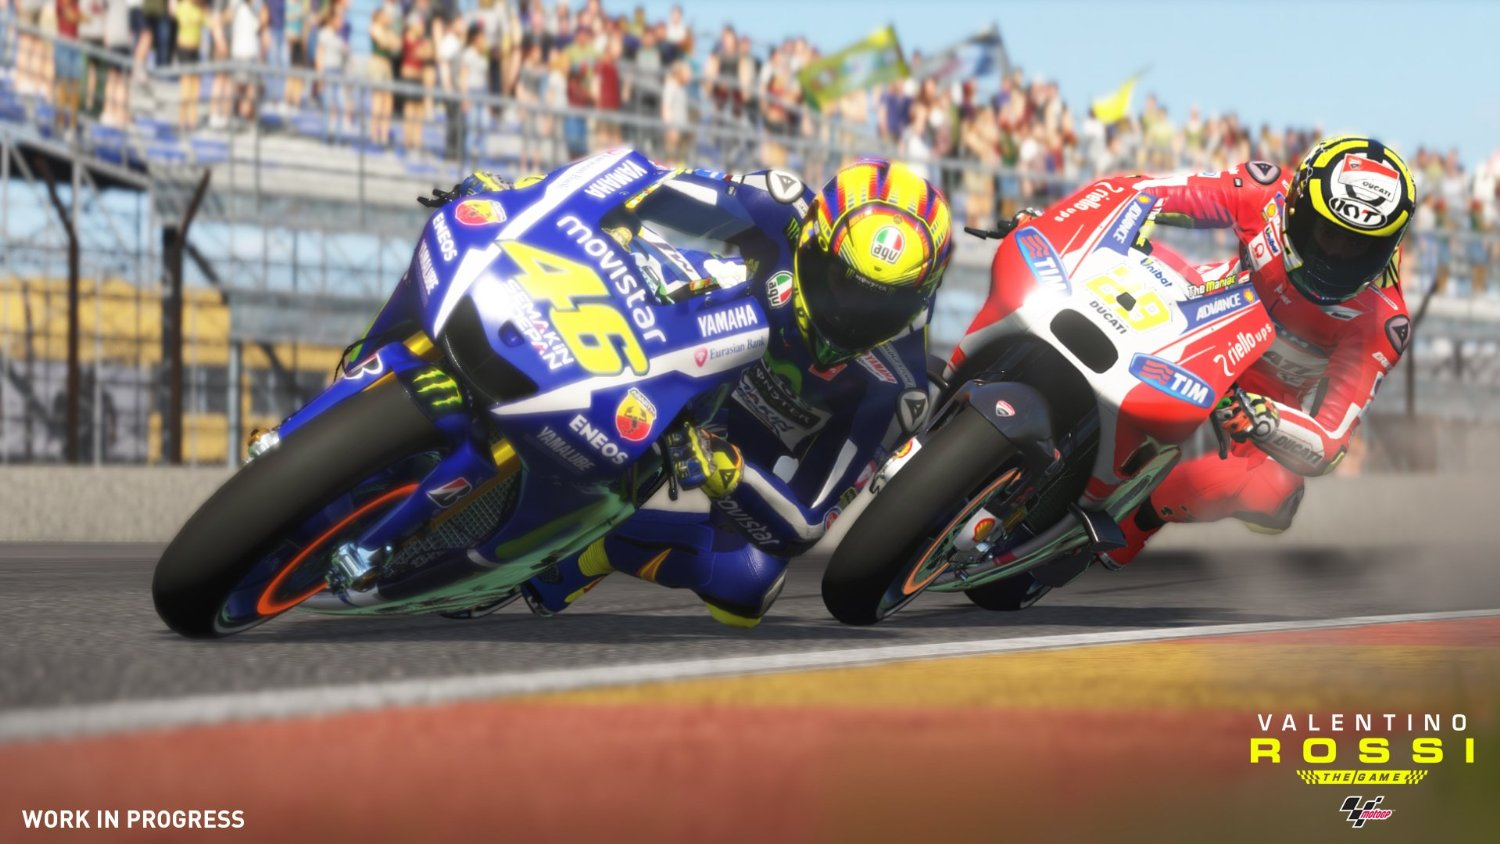 Microsoft Xbox ONE - Valentino Rossi The Game